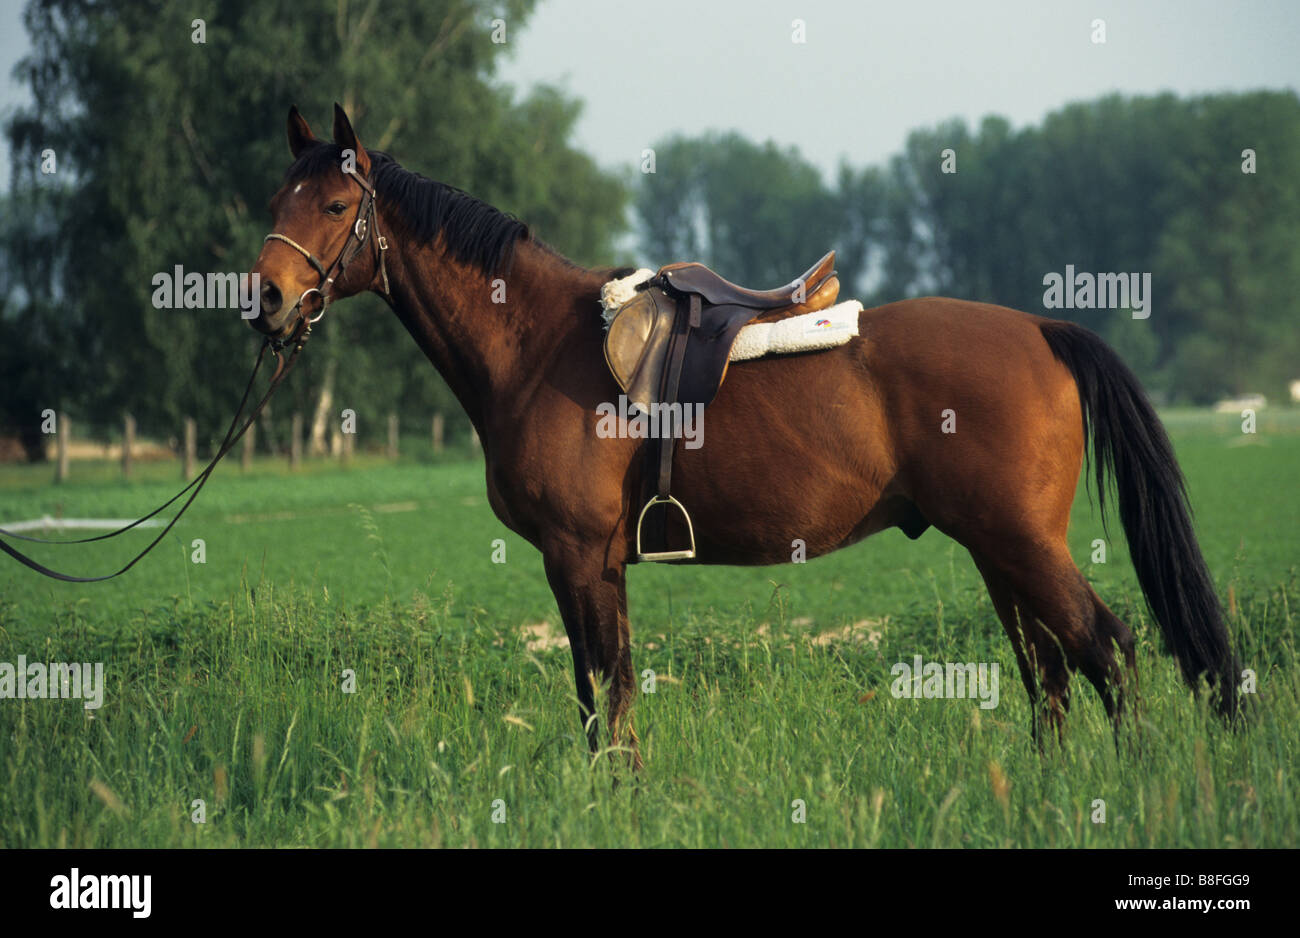 Budyonny, Budenny (Equus ferus caballus). Brown gelding with saddle and bridle standing on a meadow - Stock Image